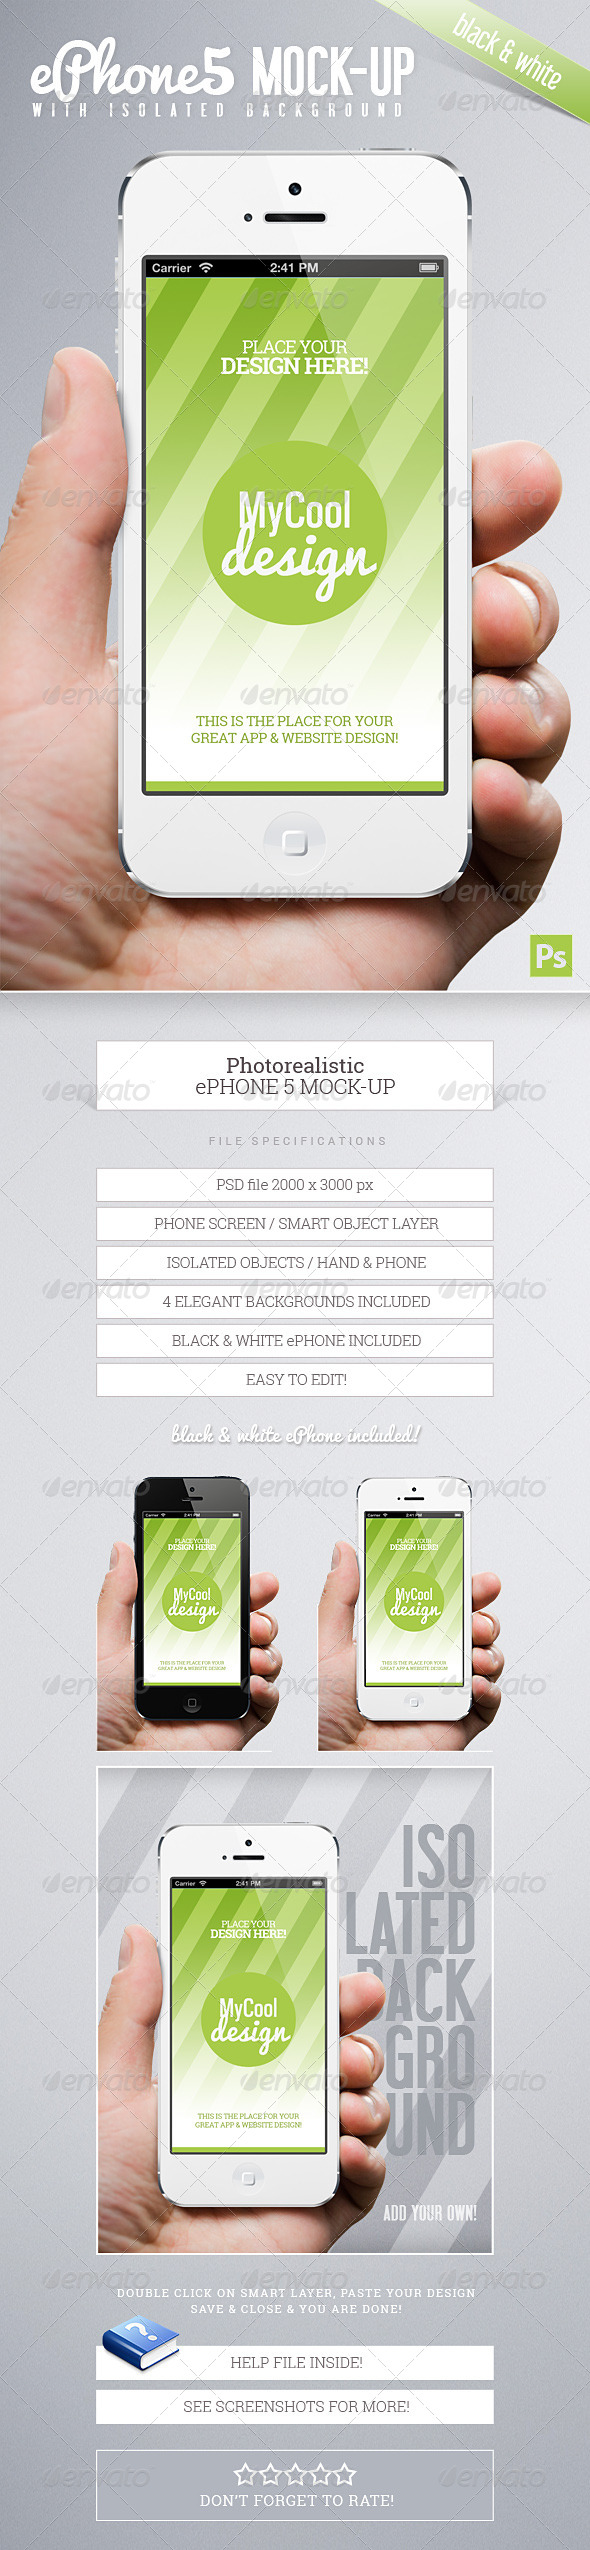 Photorealistic ePhone5 Mock-Up - Mobile Displays